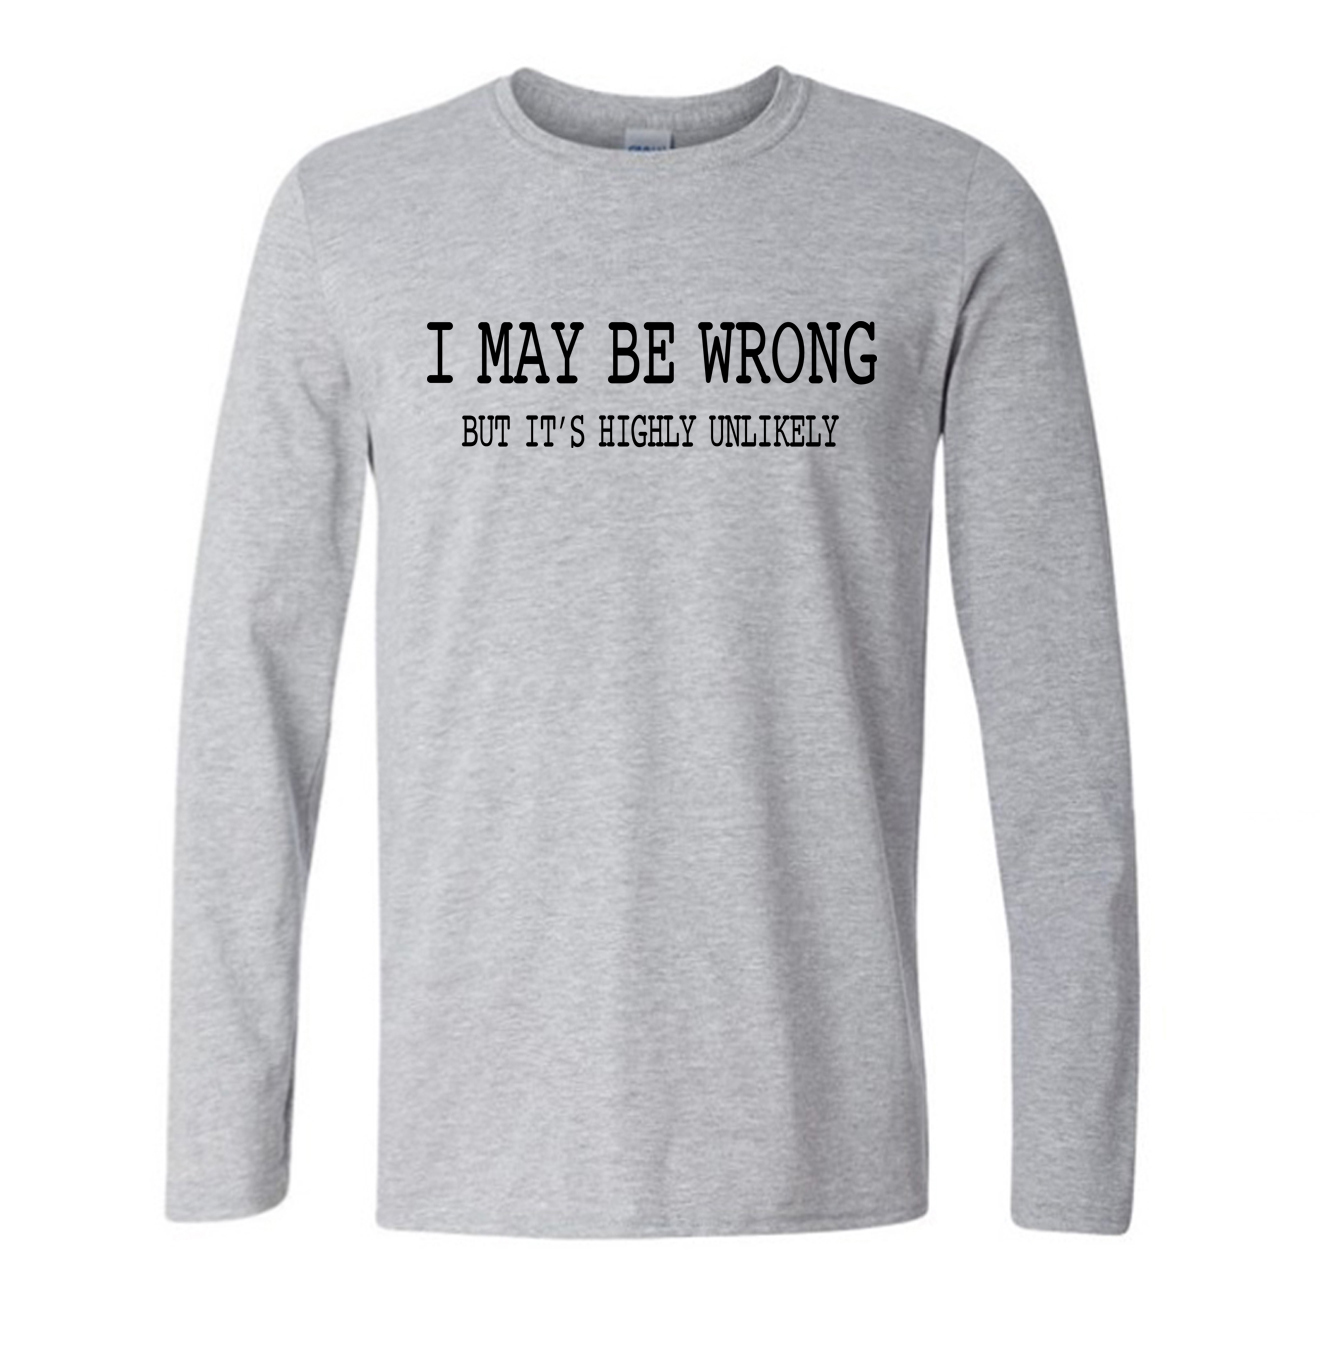 7f63c4ce Buy wrong tshirt and get free shipping on AliExpress.com